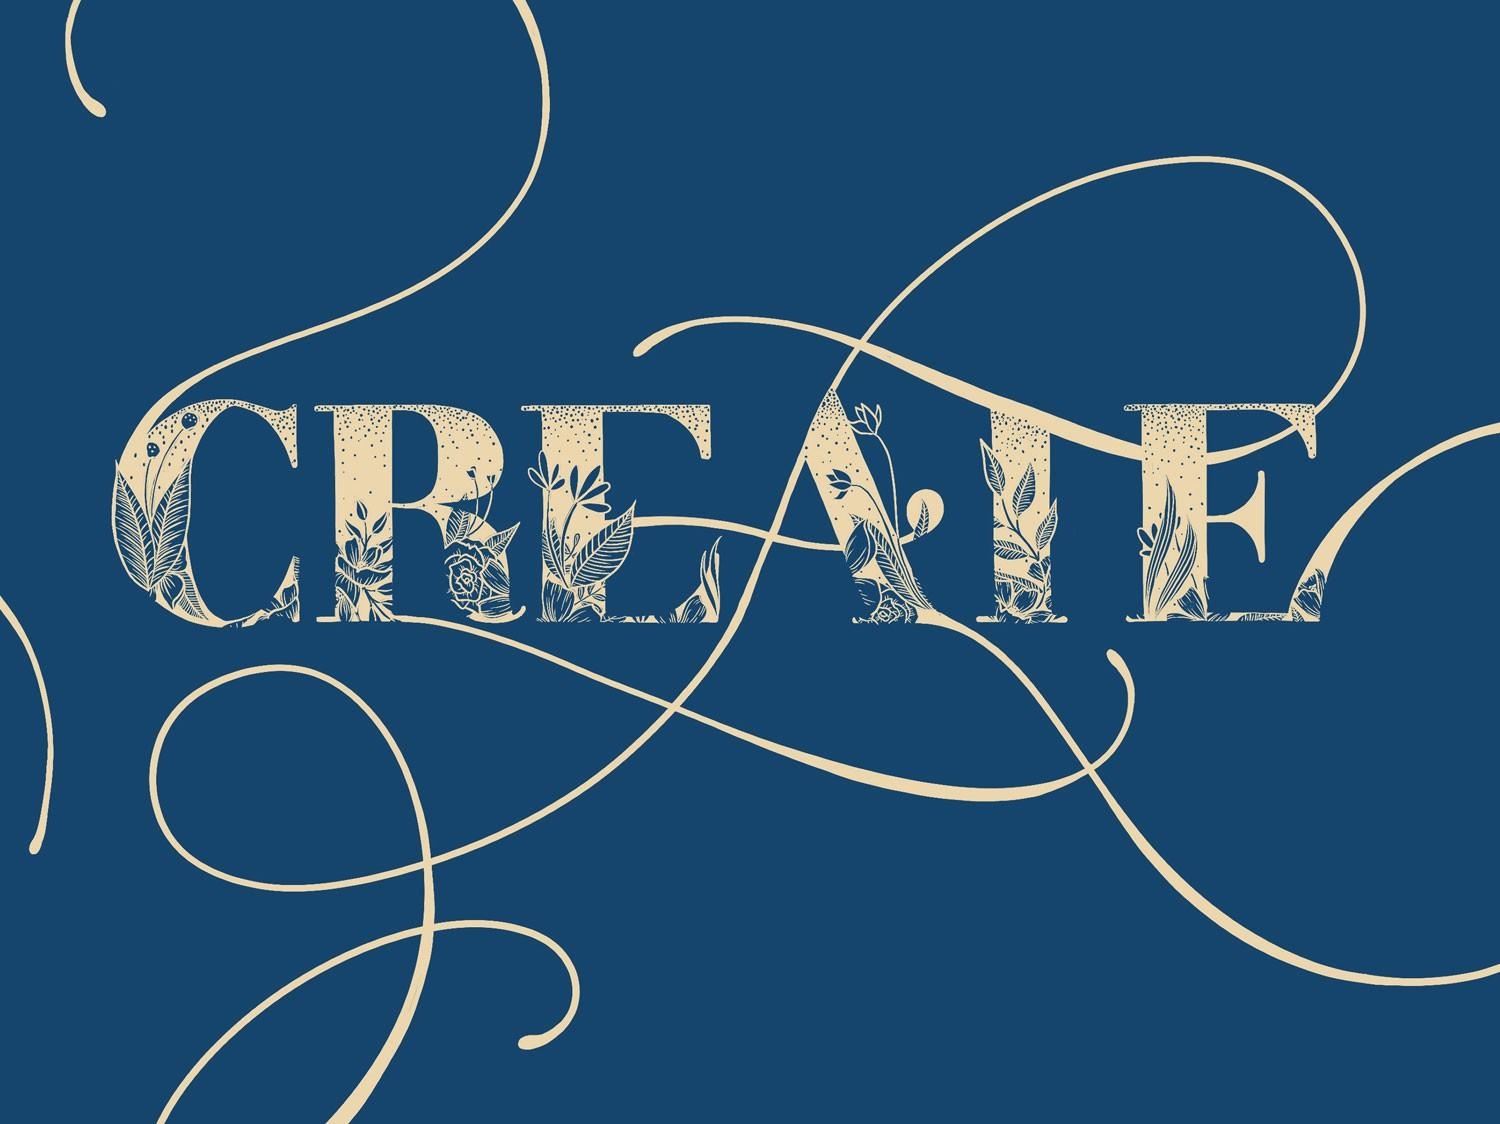 create lettering